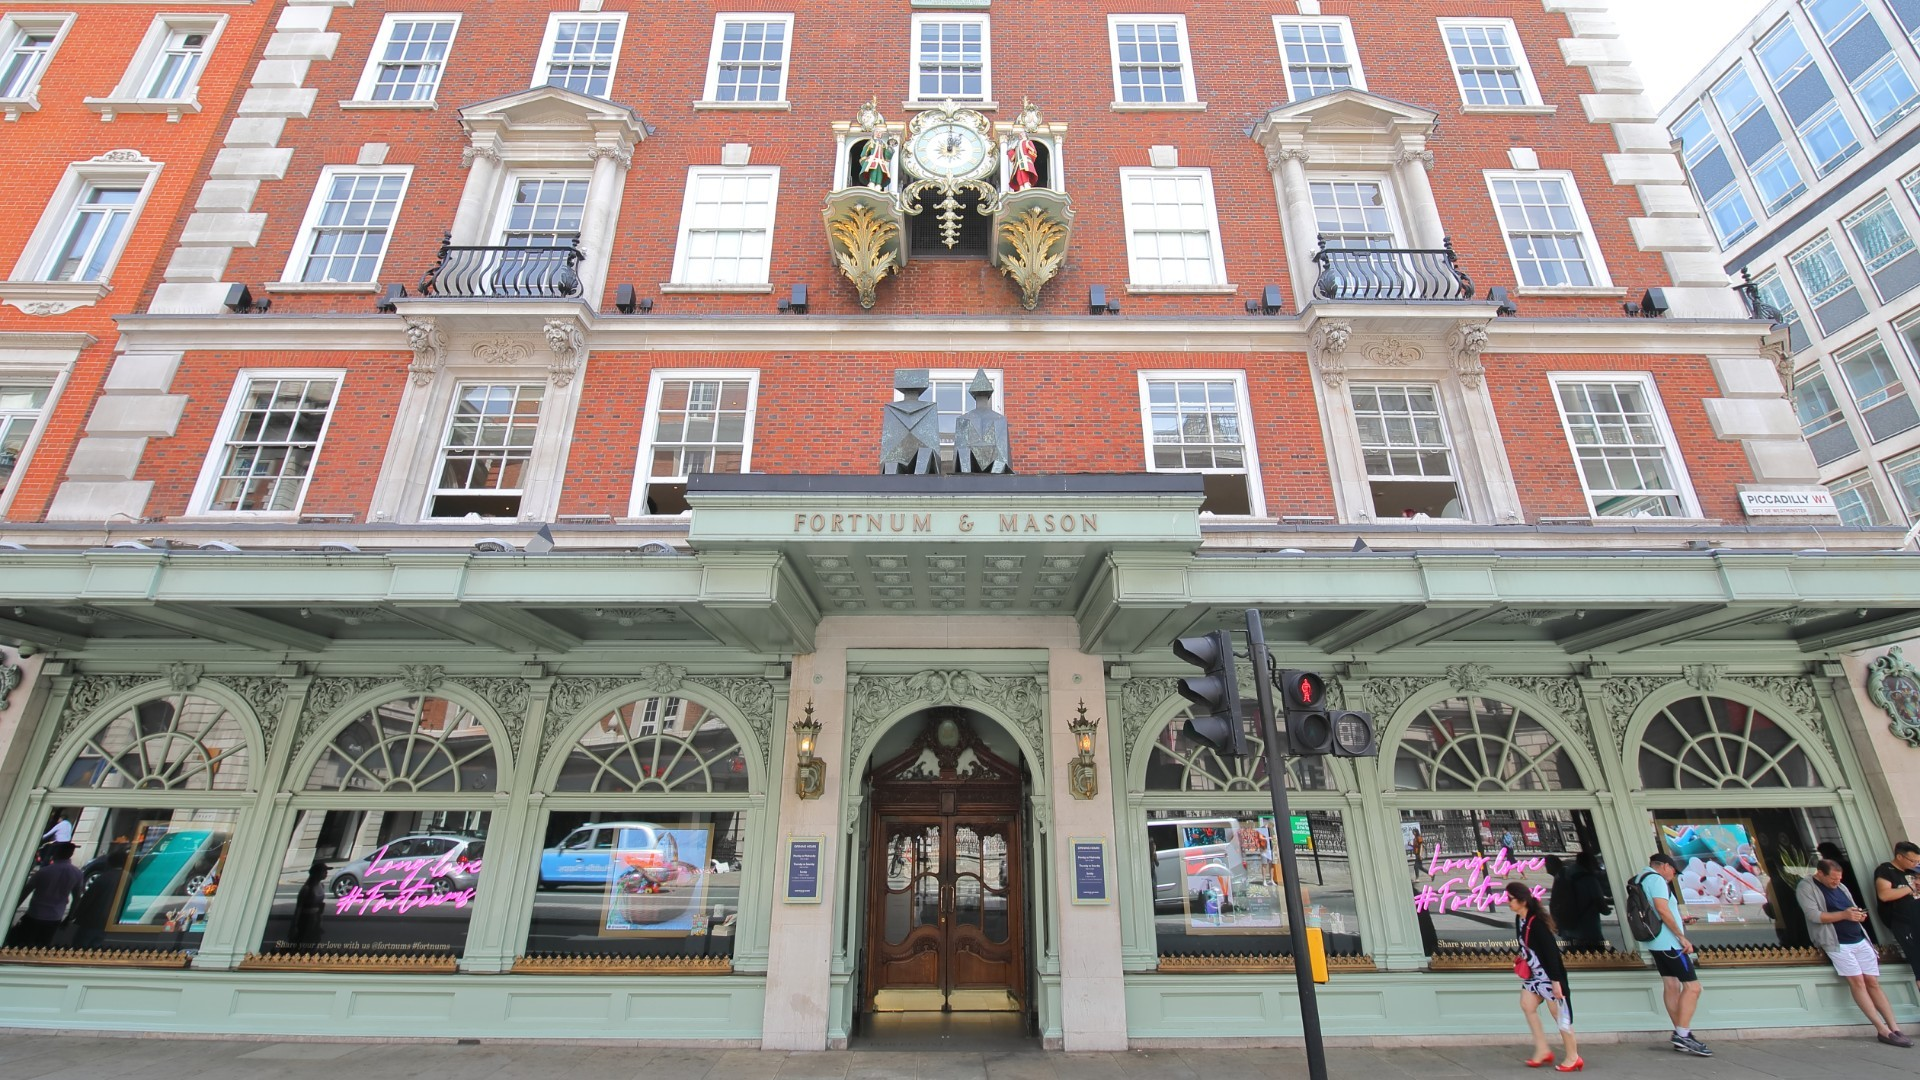 Fortnum & Mason's fancy food hall has reopened